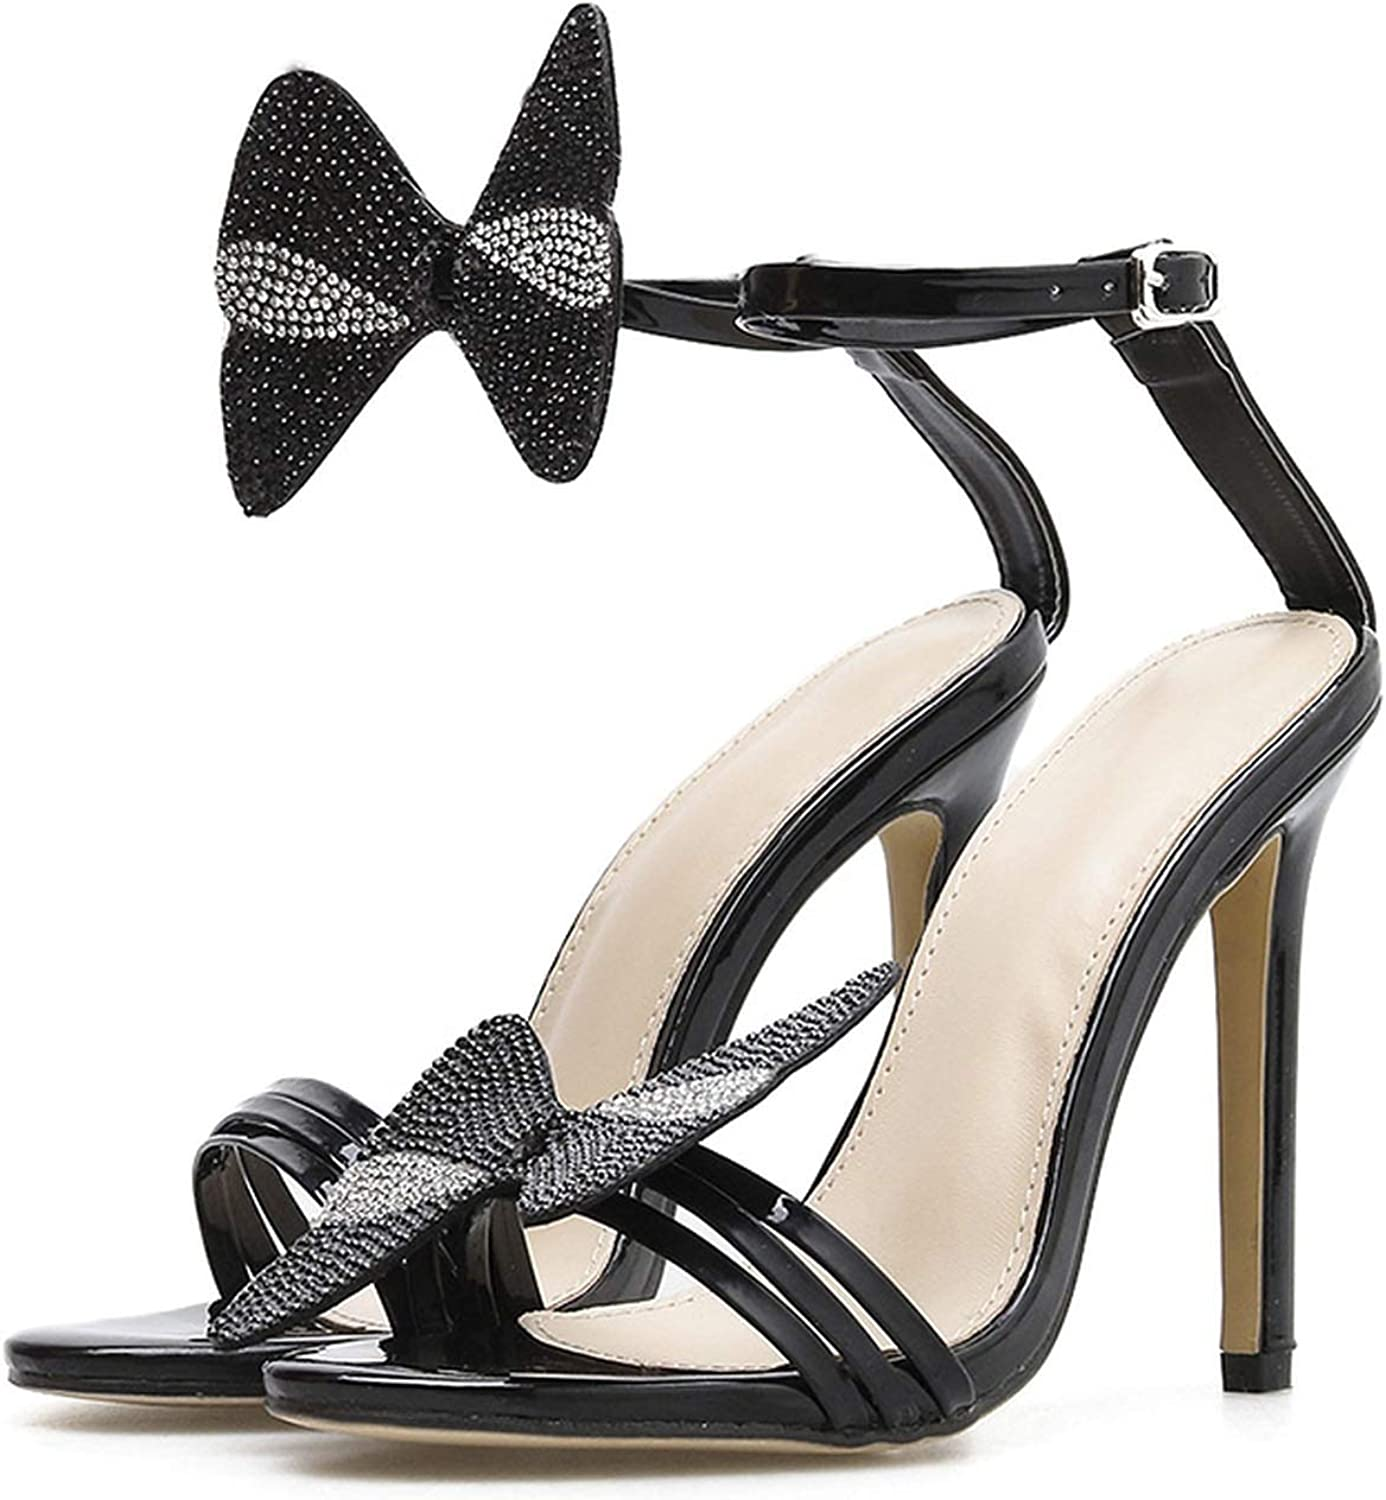 Summer Women shoes Sandals Black Bowtie High Heels Rhinestone Crystal Ankle Strap Open Toe Sandals Lady Party Sandals